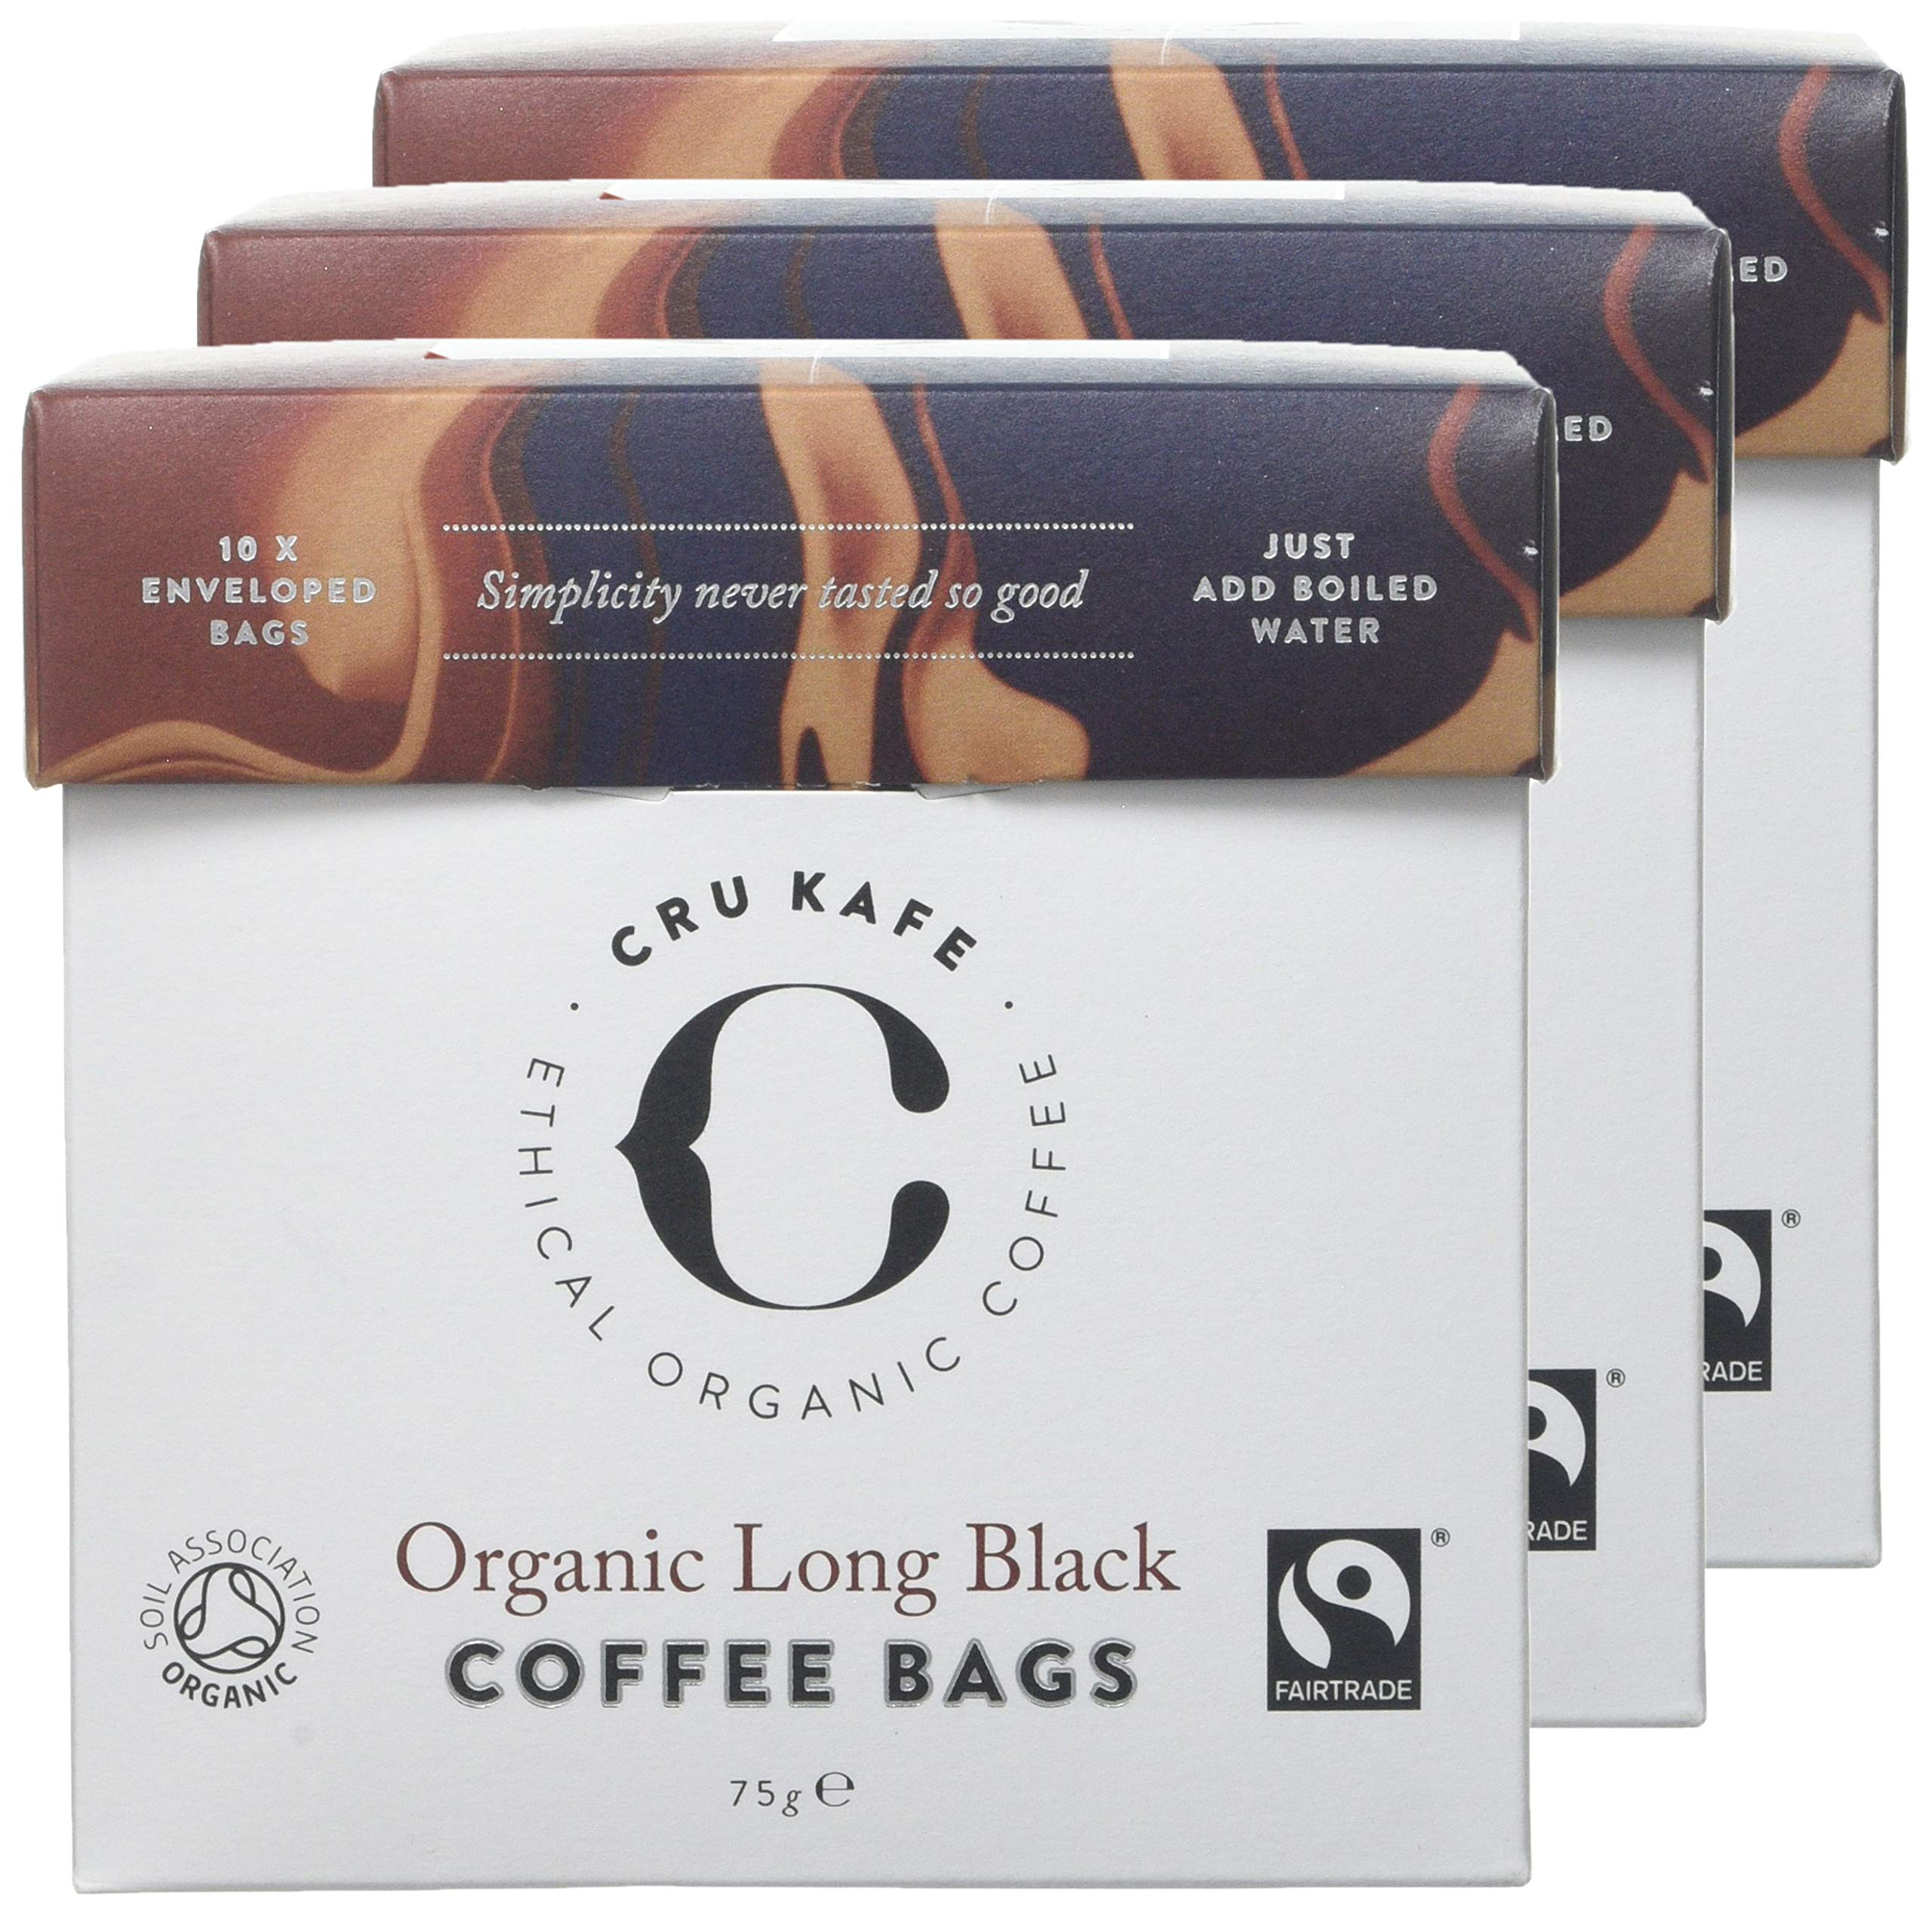 CRU Kafe Organic Coffee Bags | Strength 9 | Big Bodied & Smoky-Sweet Flavour | Organic, Fairtrade & Soil Association Certified | Convenient Coffee Bags | Just Add Water – 3 Boxes of 10 Bags